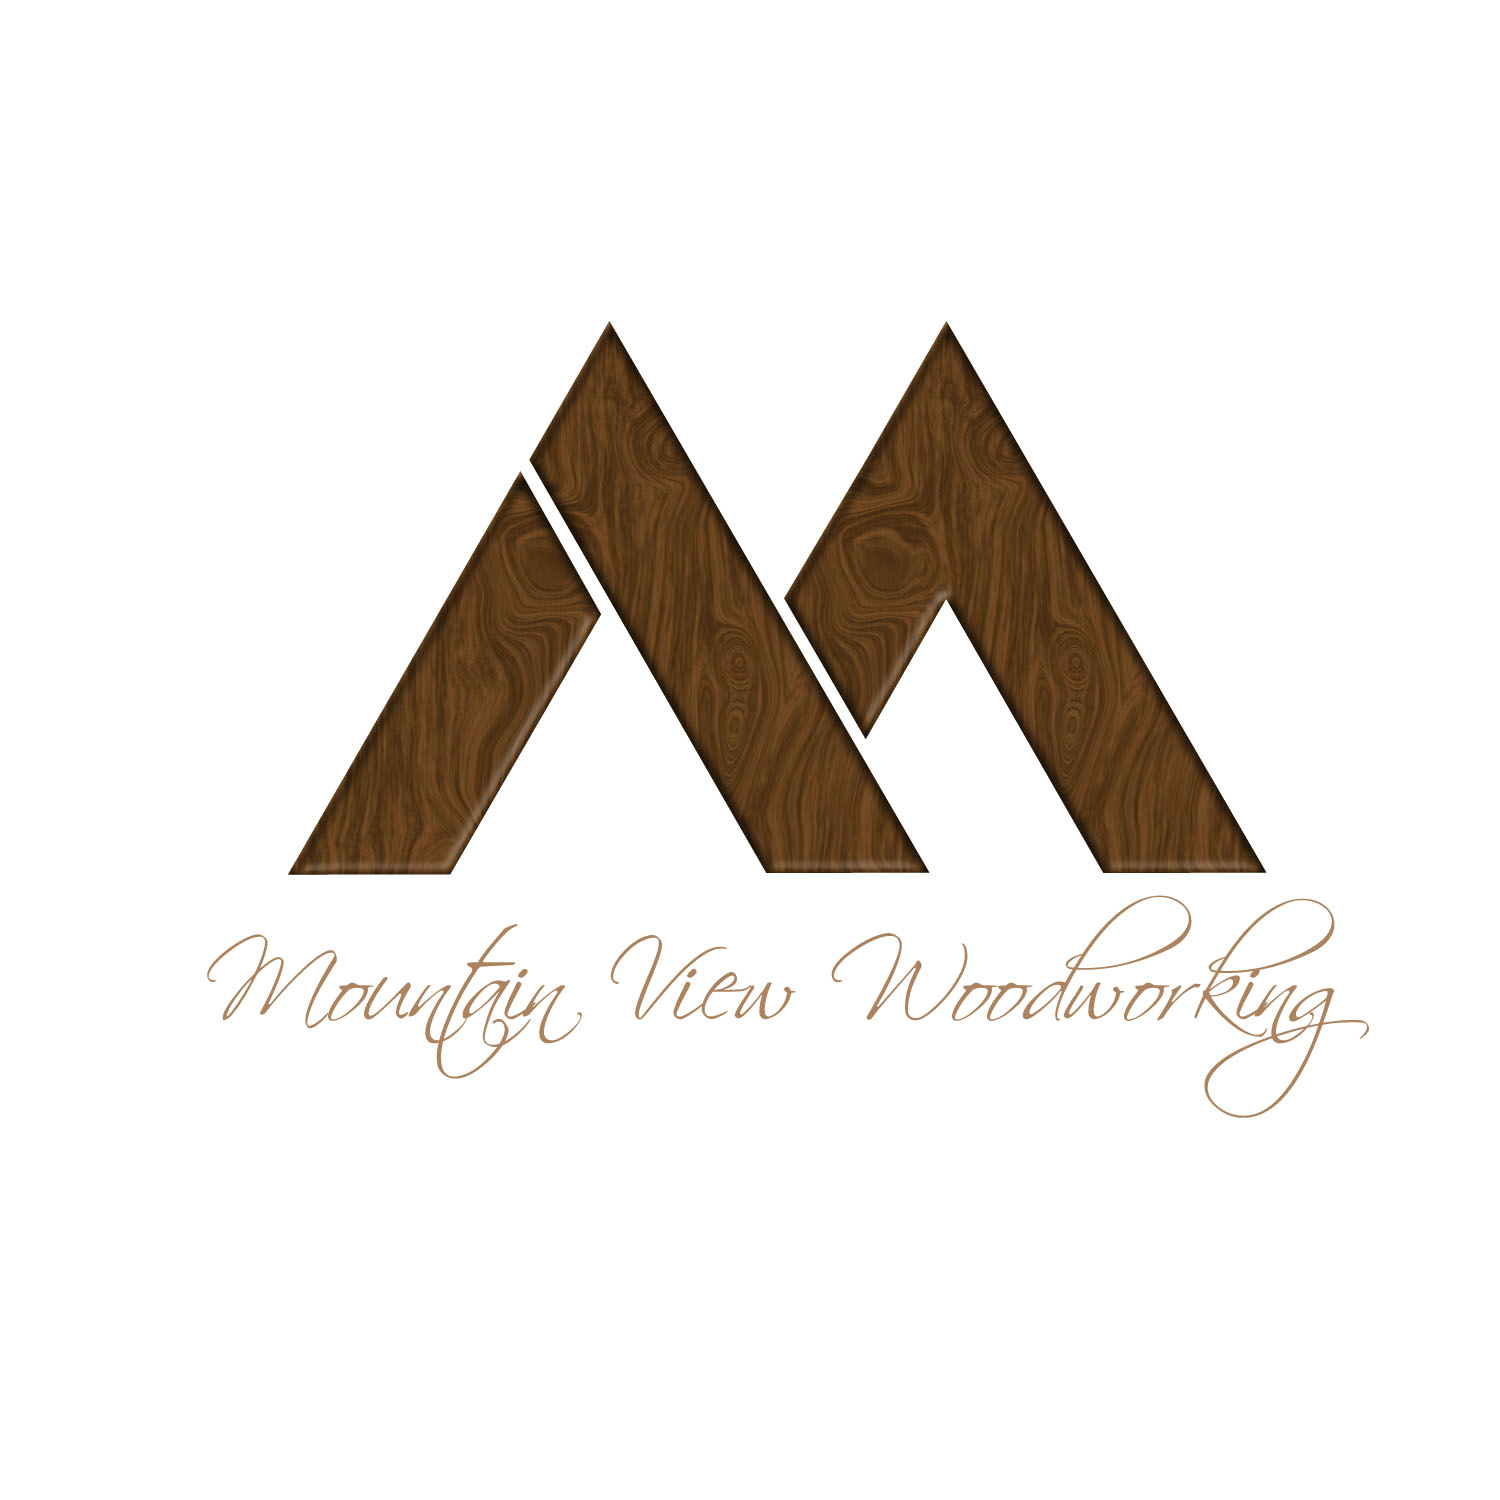 MV woodworking Logo